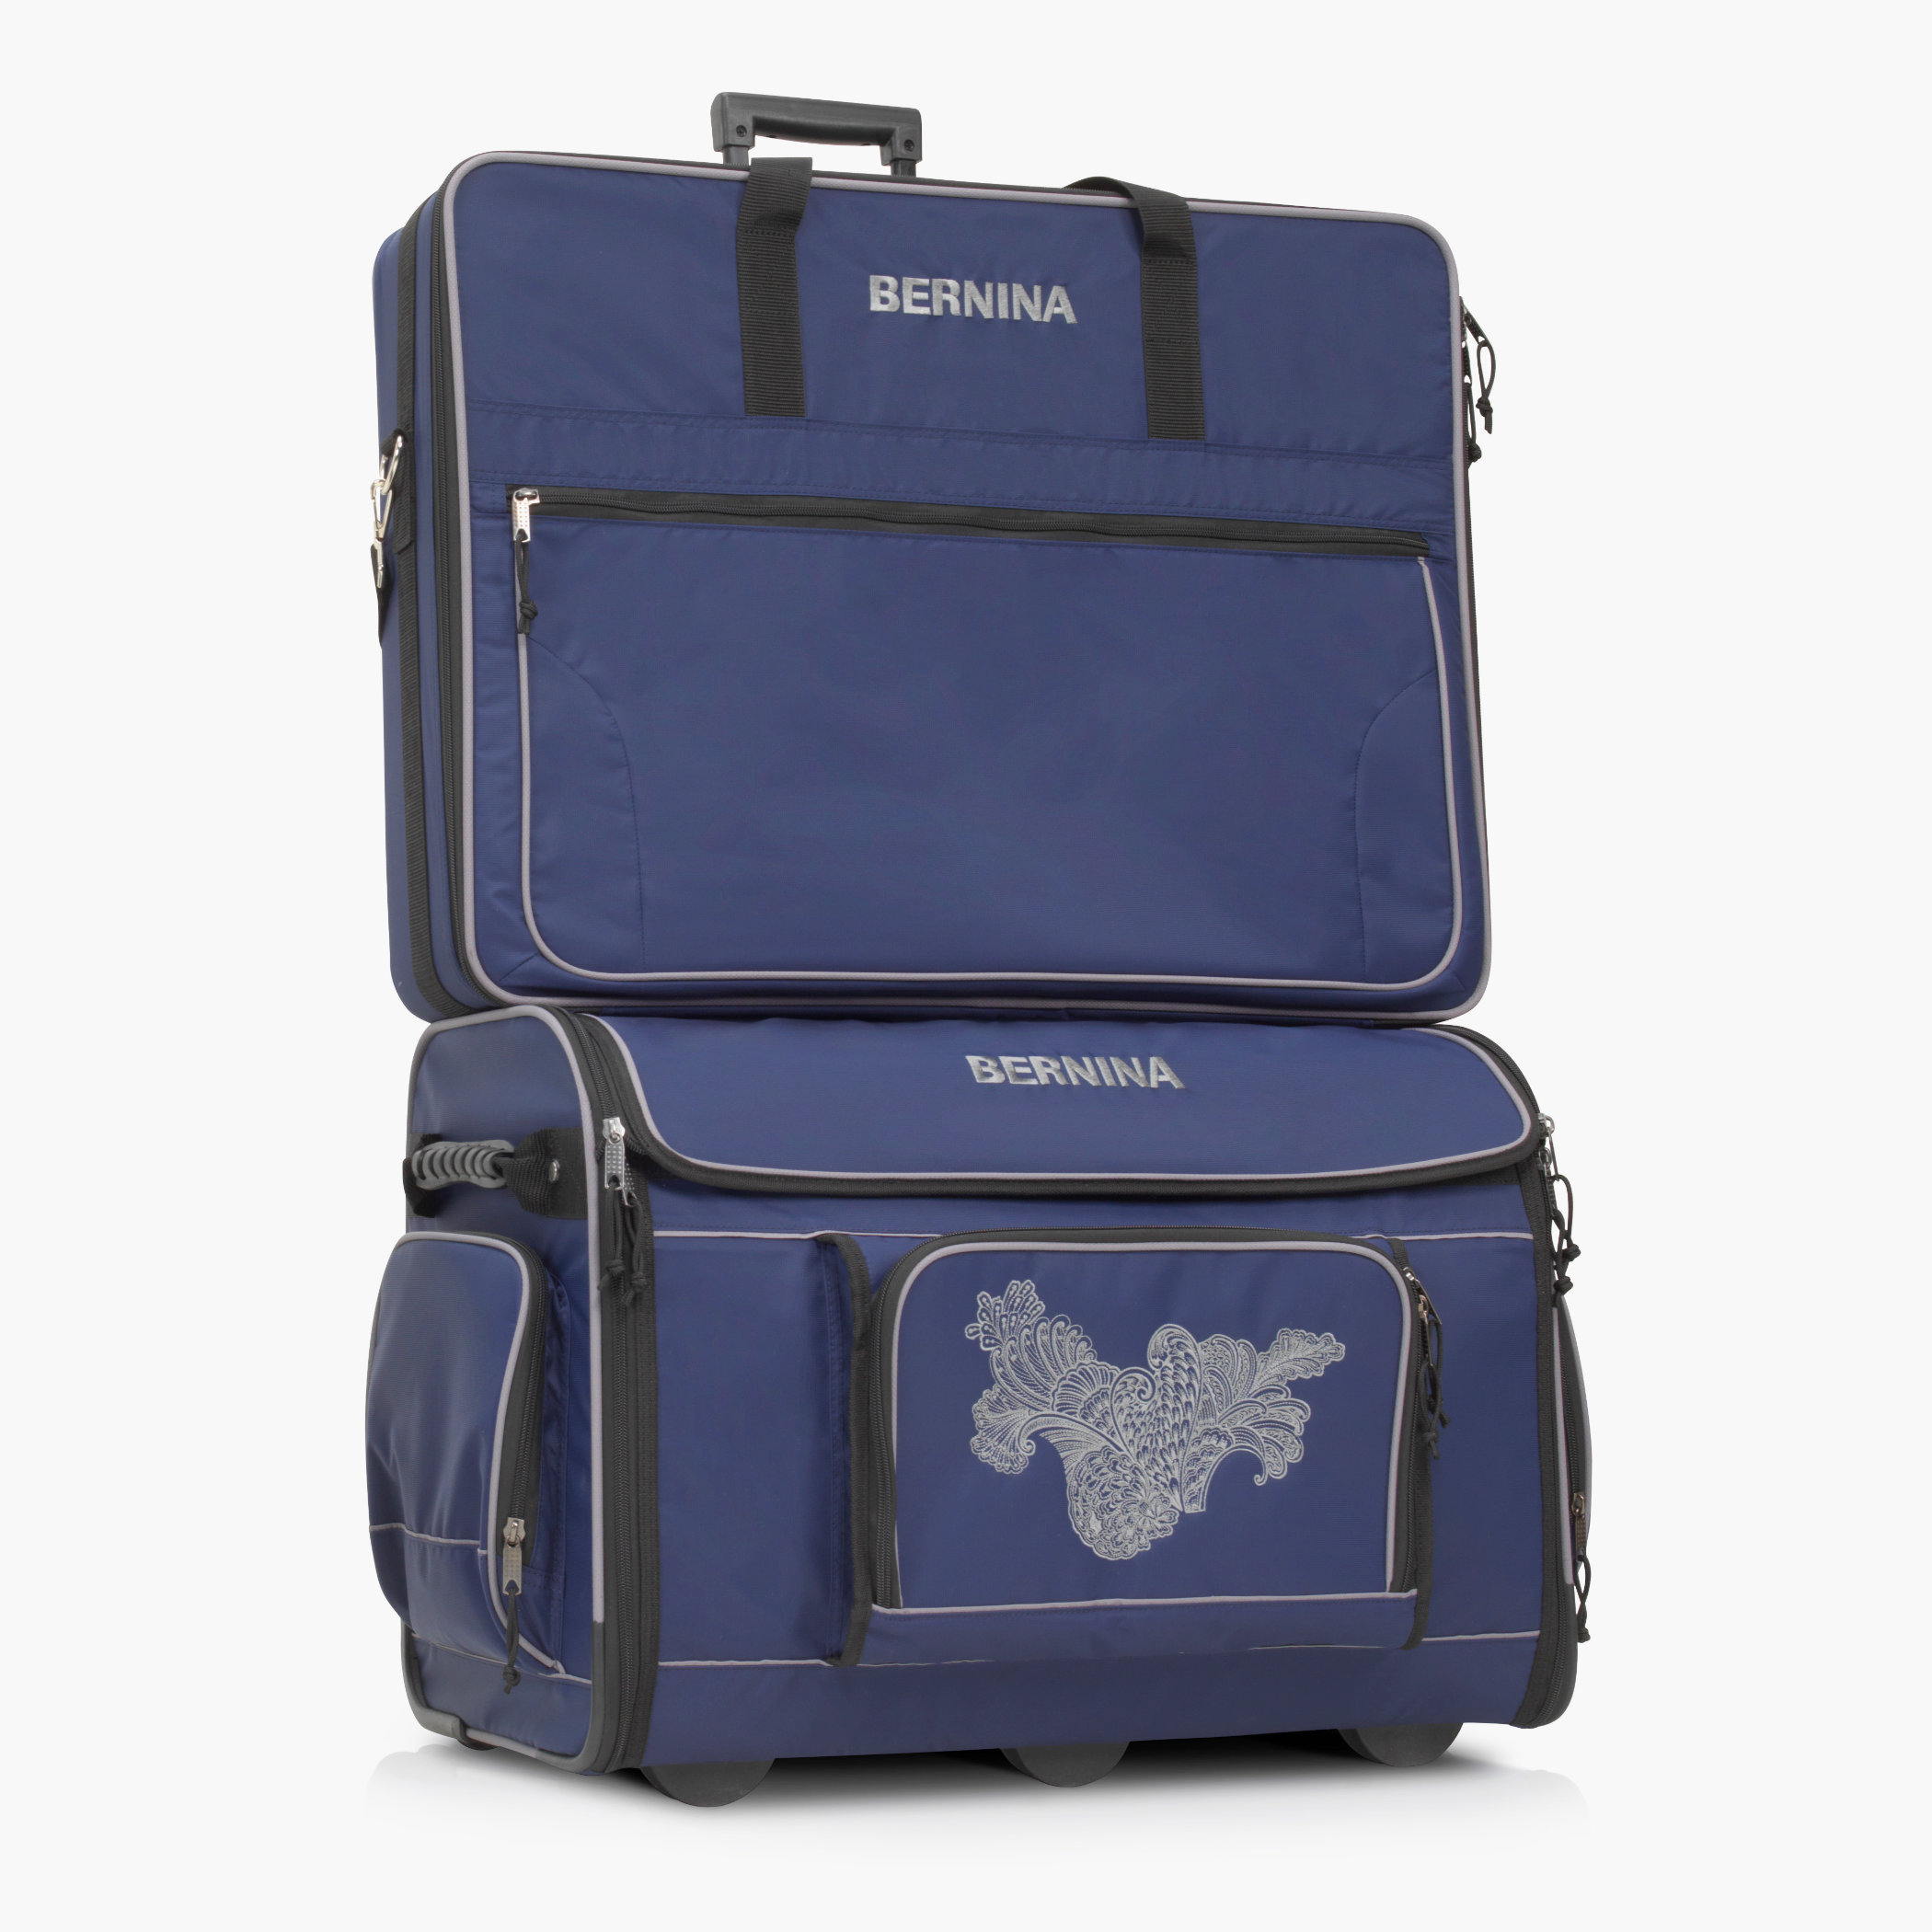 Free Special Edition Suitcases